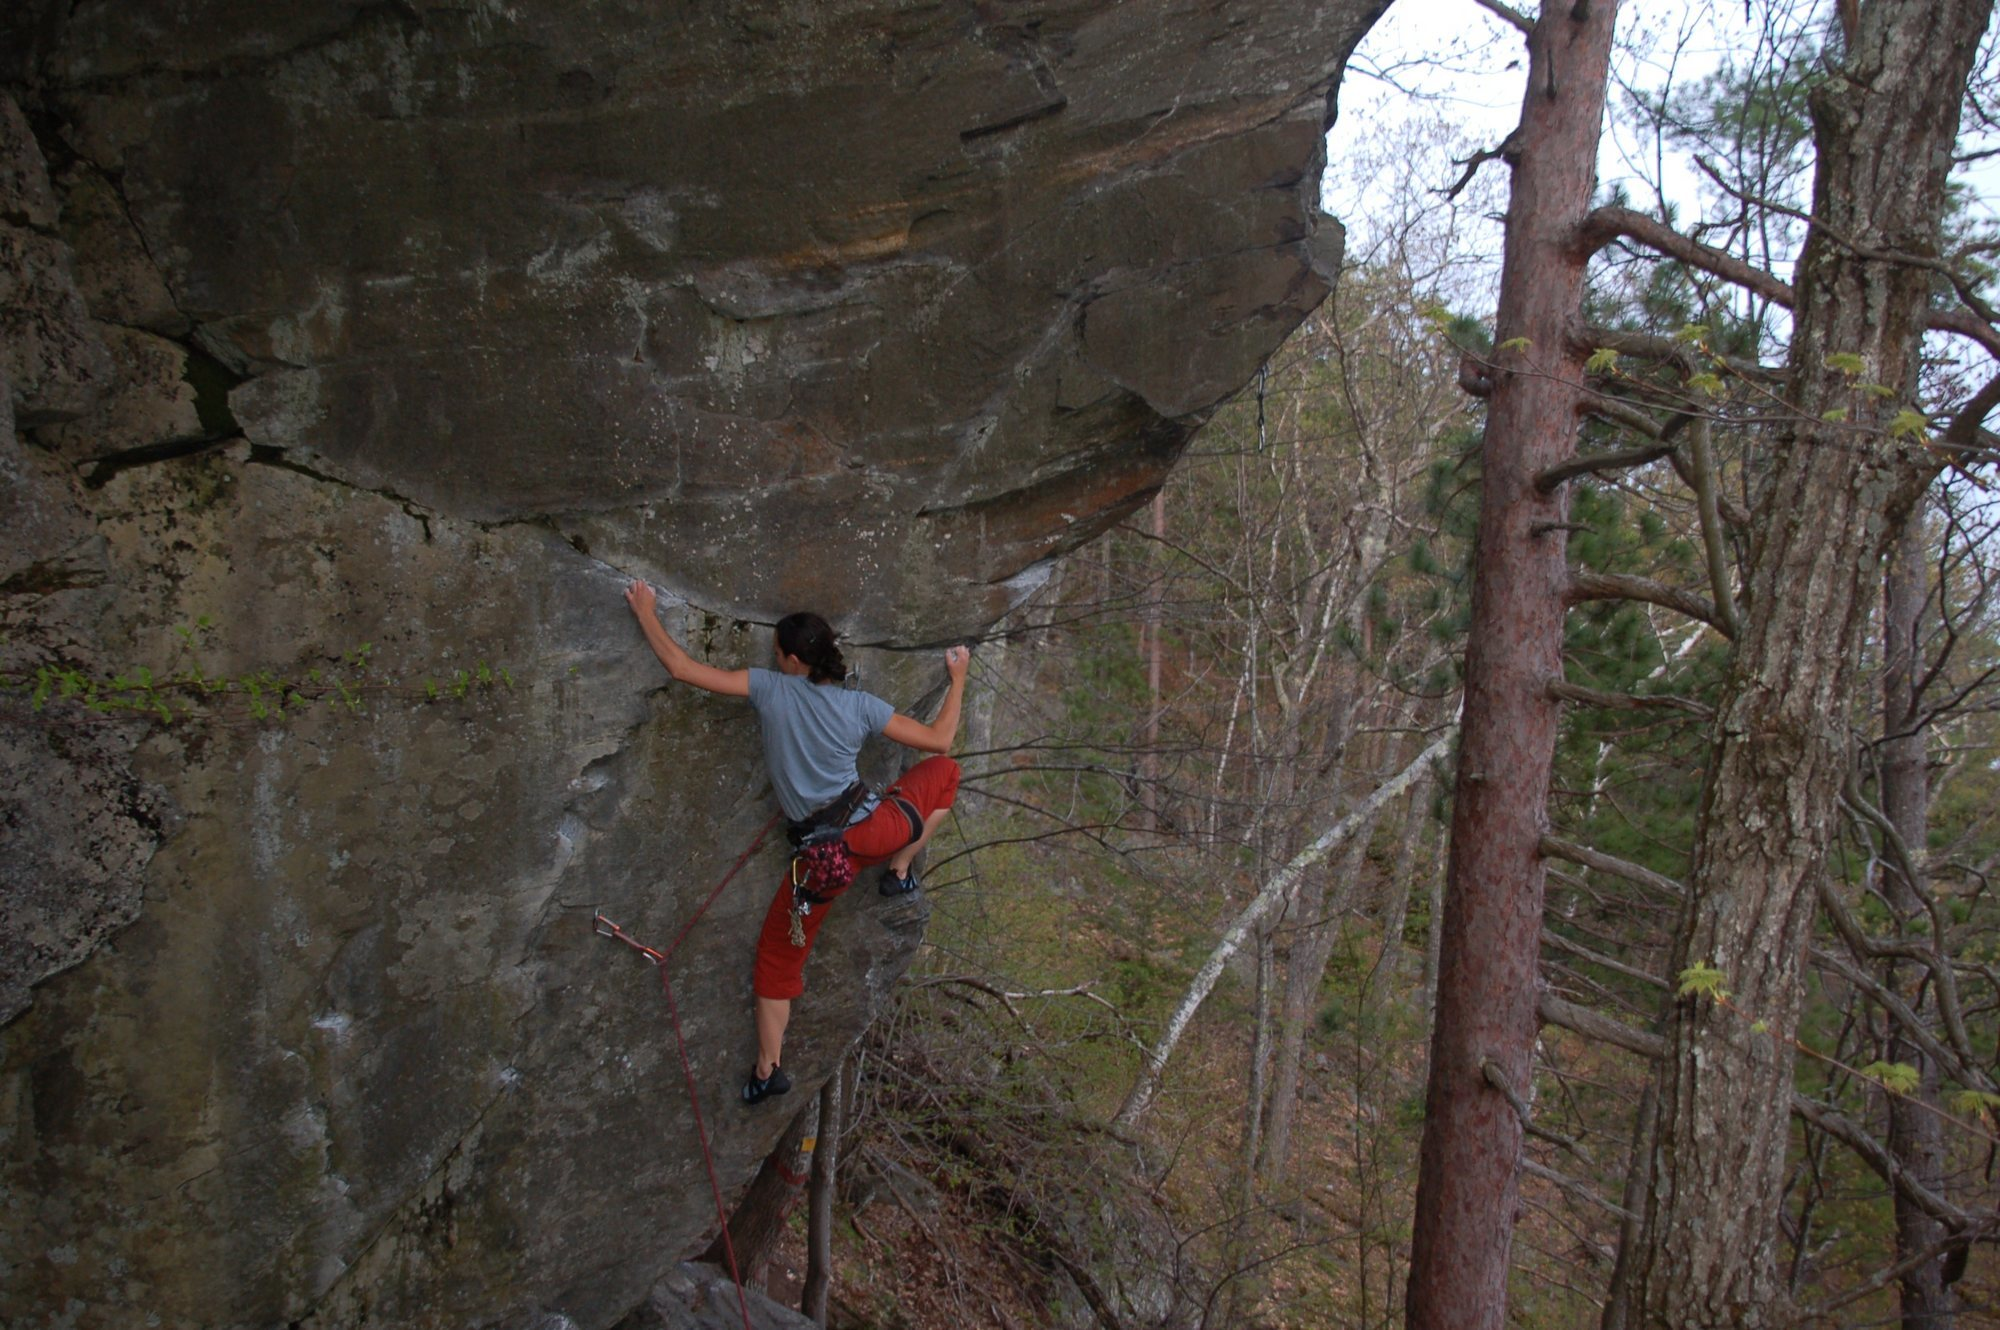 Training Journal – Climbing (Rumney), Bouldering (Lynn Woods), Climbing Workouts: 6/3/19 – 6/9/19